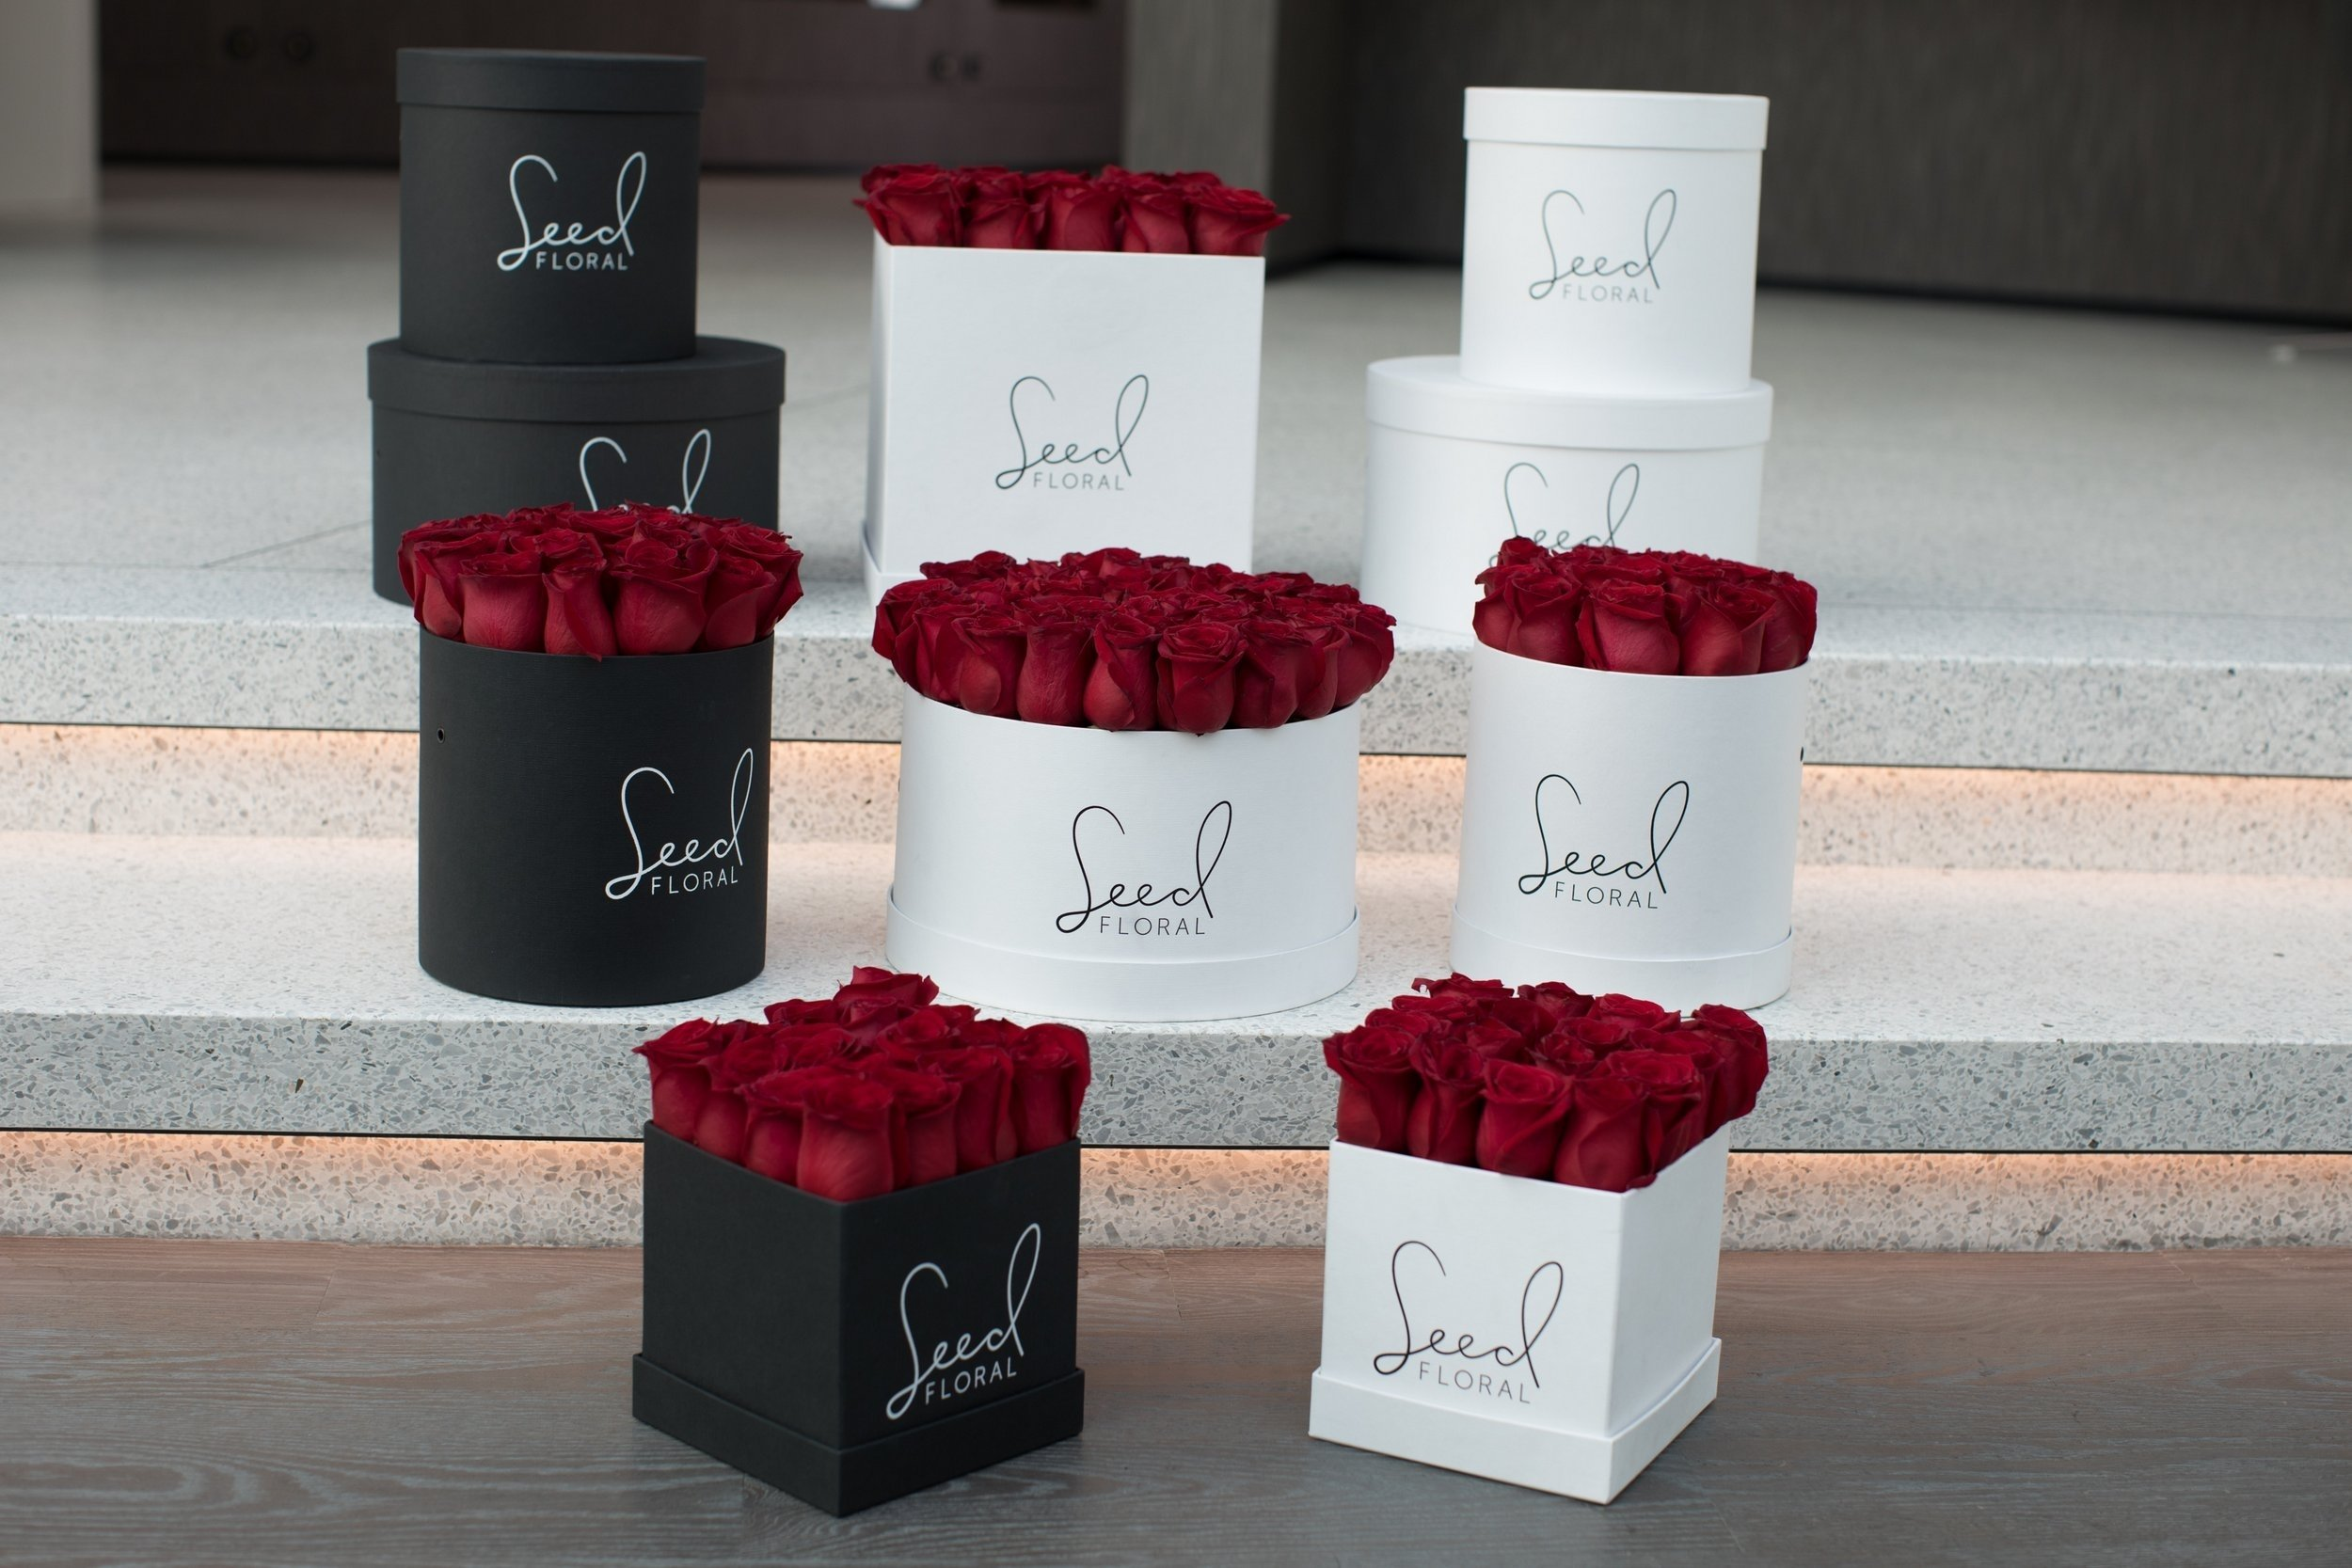 10 Fabulous Best Ideas For Valentines Day great valentines day date ideas for los angeles couples cbs los 11 2020